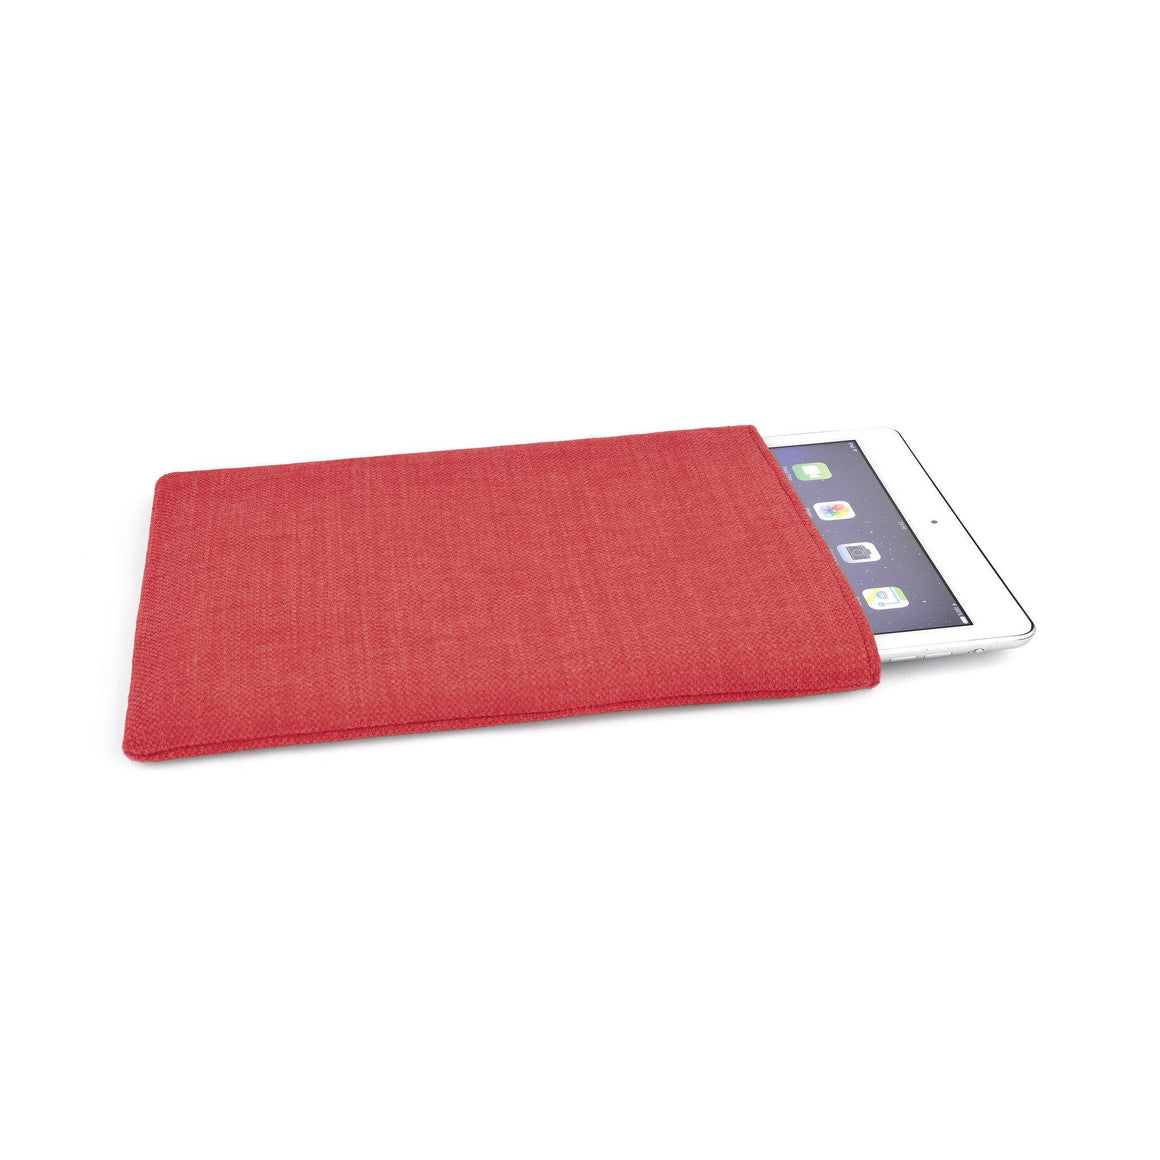 iPad Pro Linen Red 12.9 - Wrappers UK